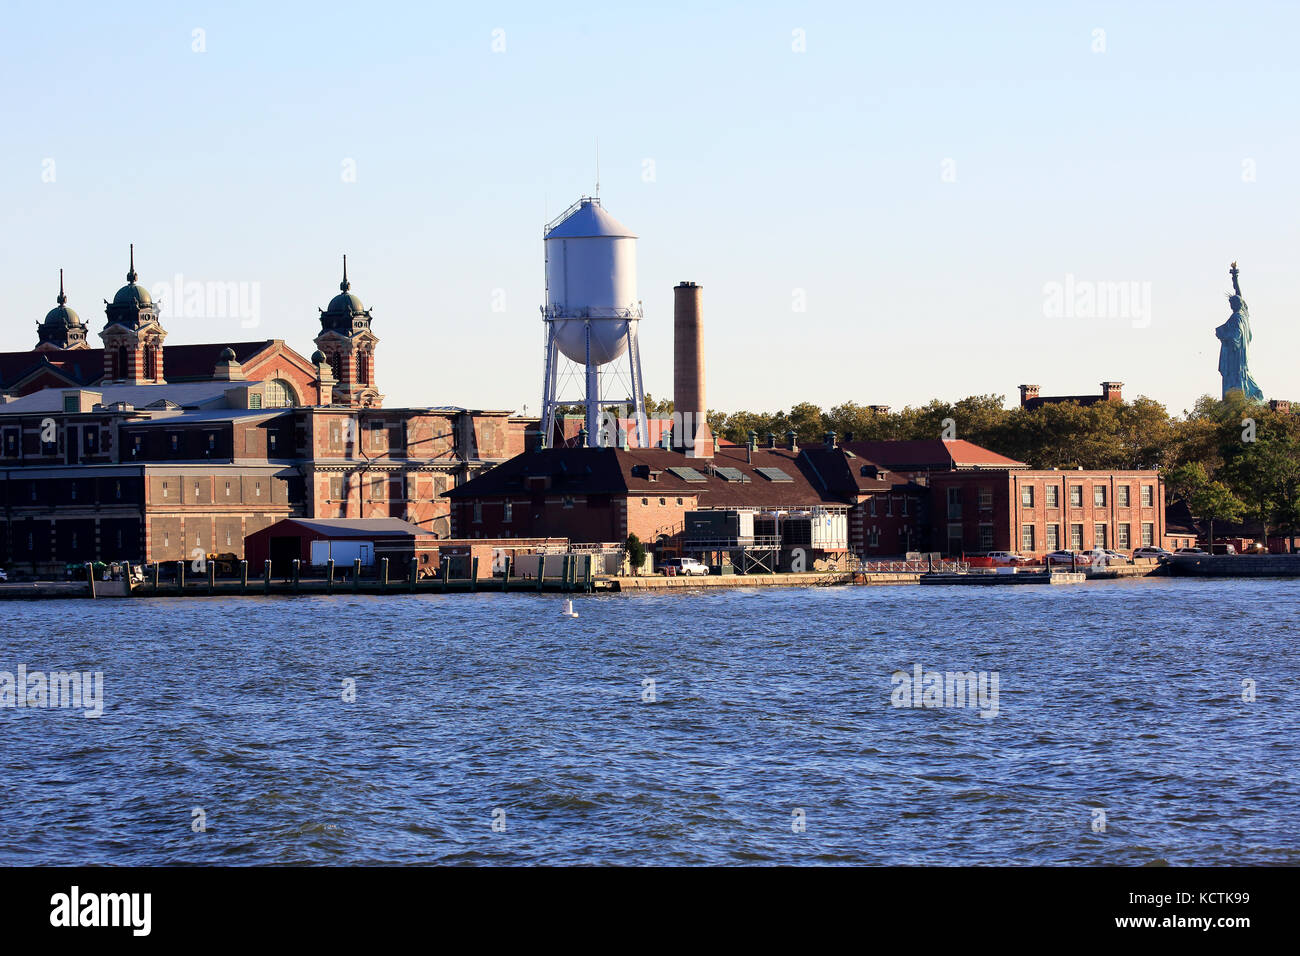 View of Ellis Island from Liberty State Park with Statue of Liberty in the background. New Jersey.USA - Stock Image